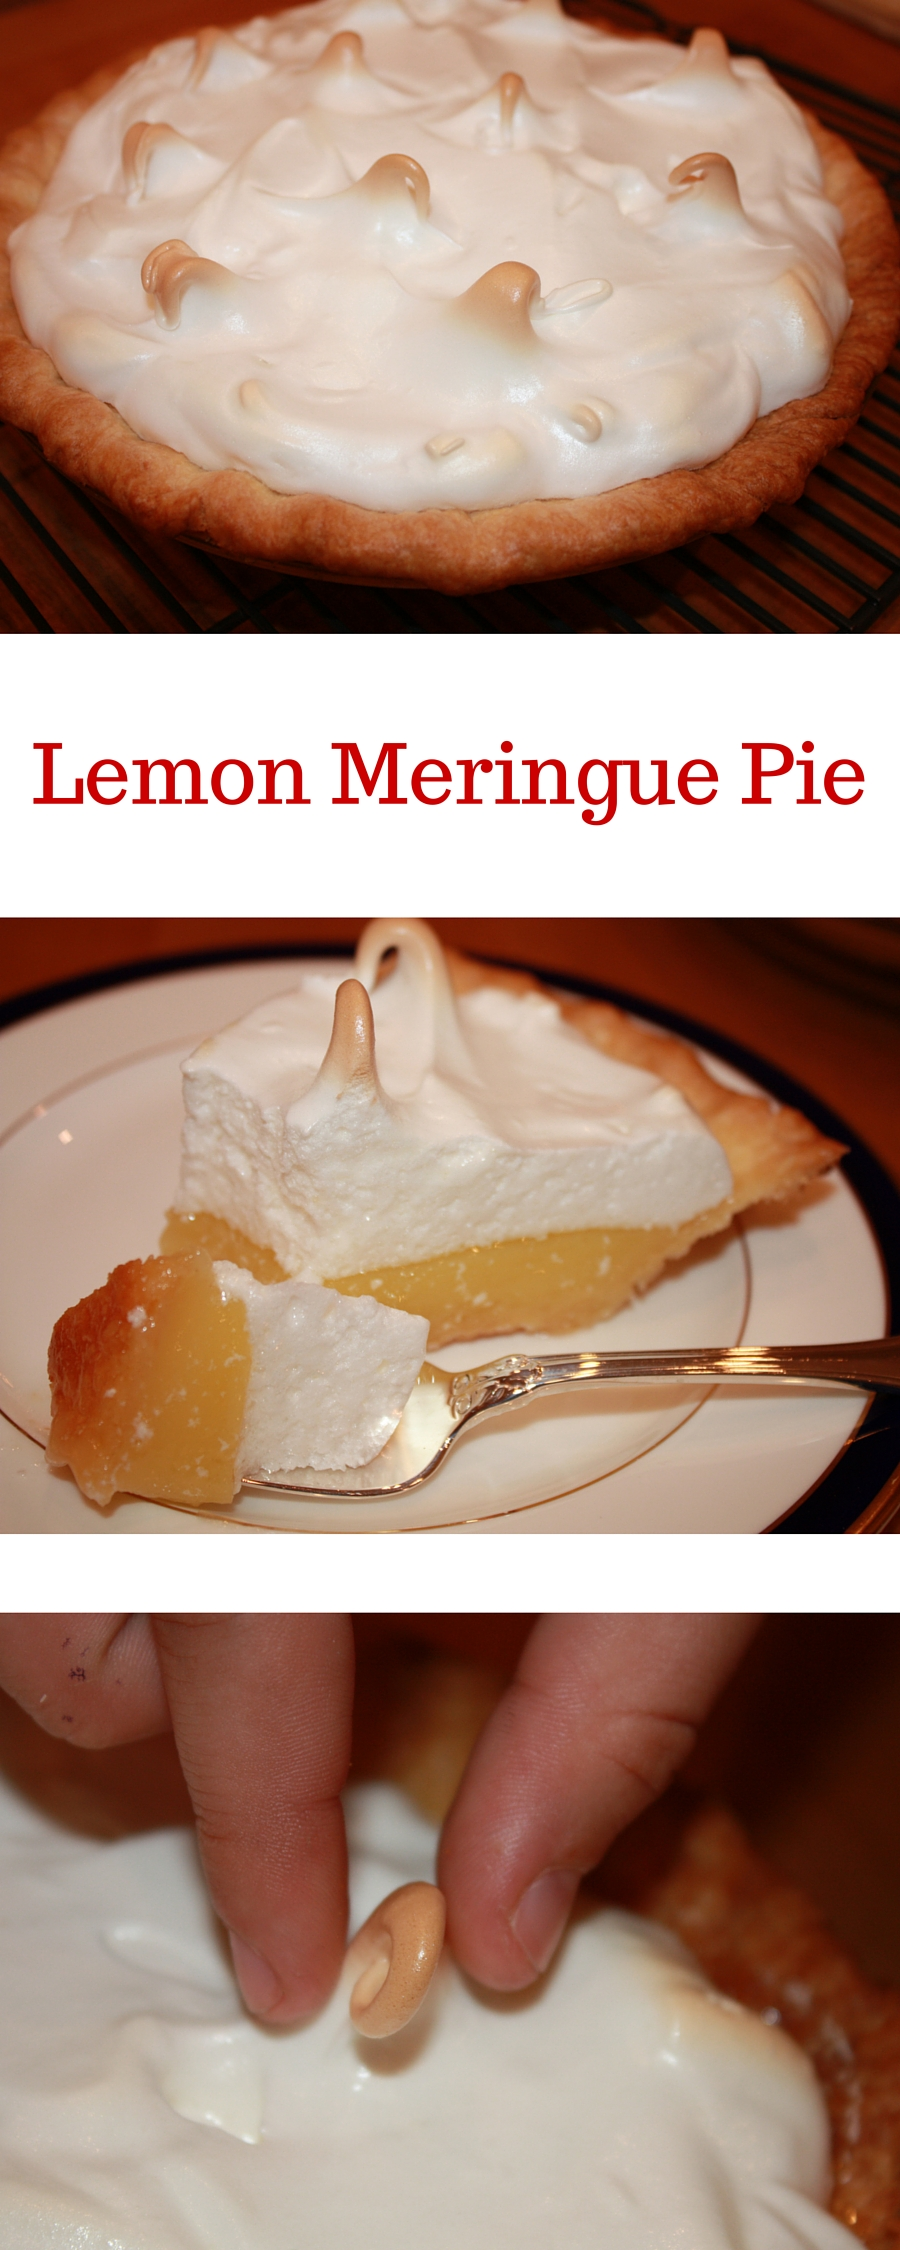 Fall in love again with this family treasure - Lemon Meringue Pie!! The meringue is like a fluffy pillow with a pucker up lemon filling and buttery crust.